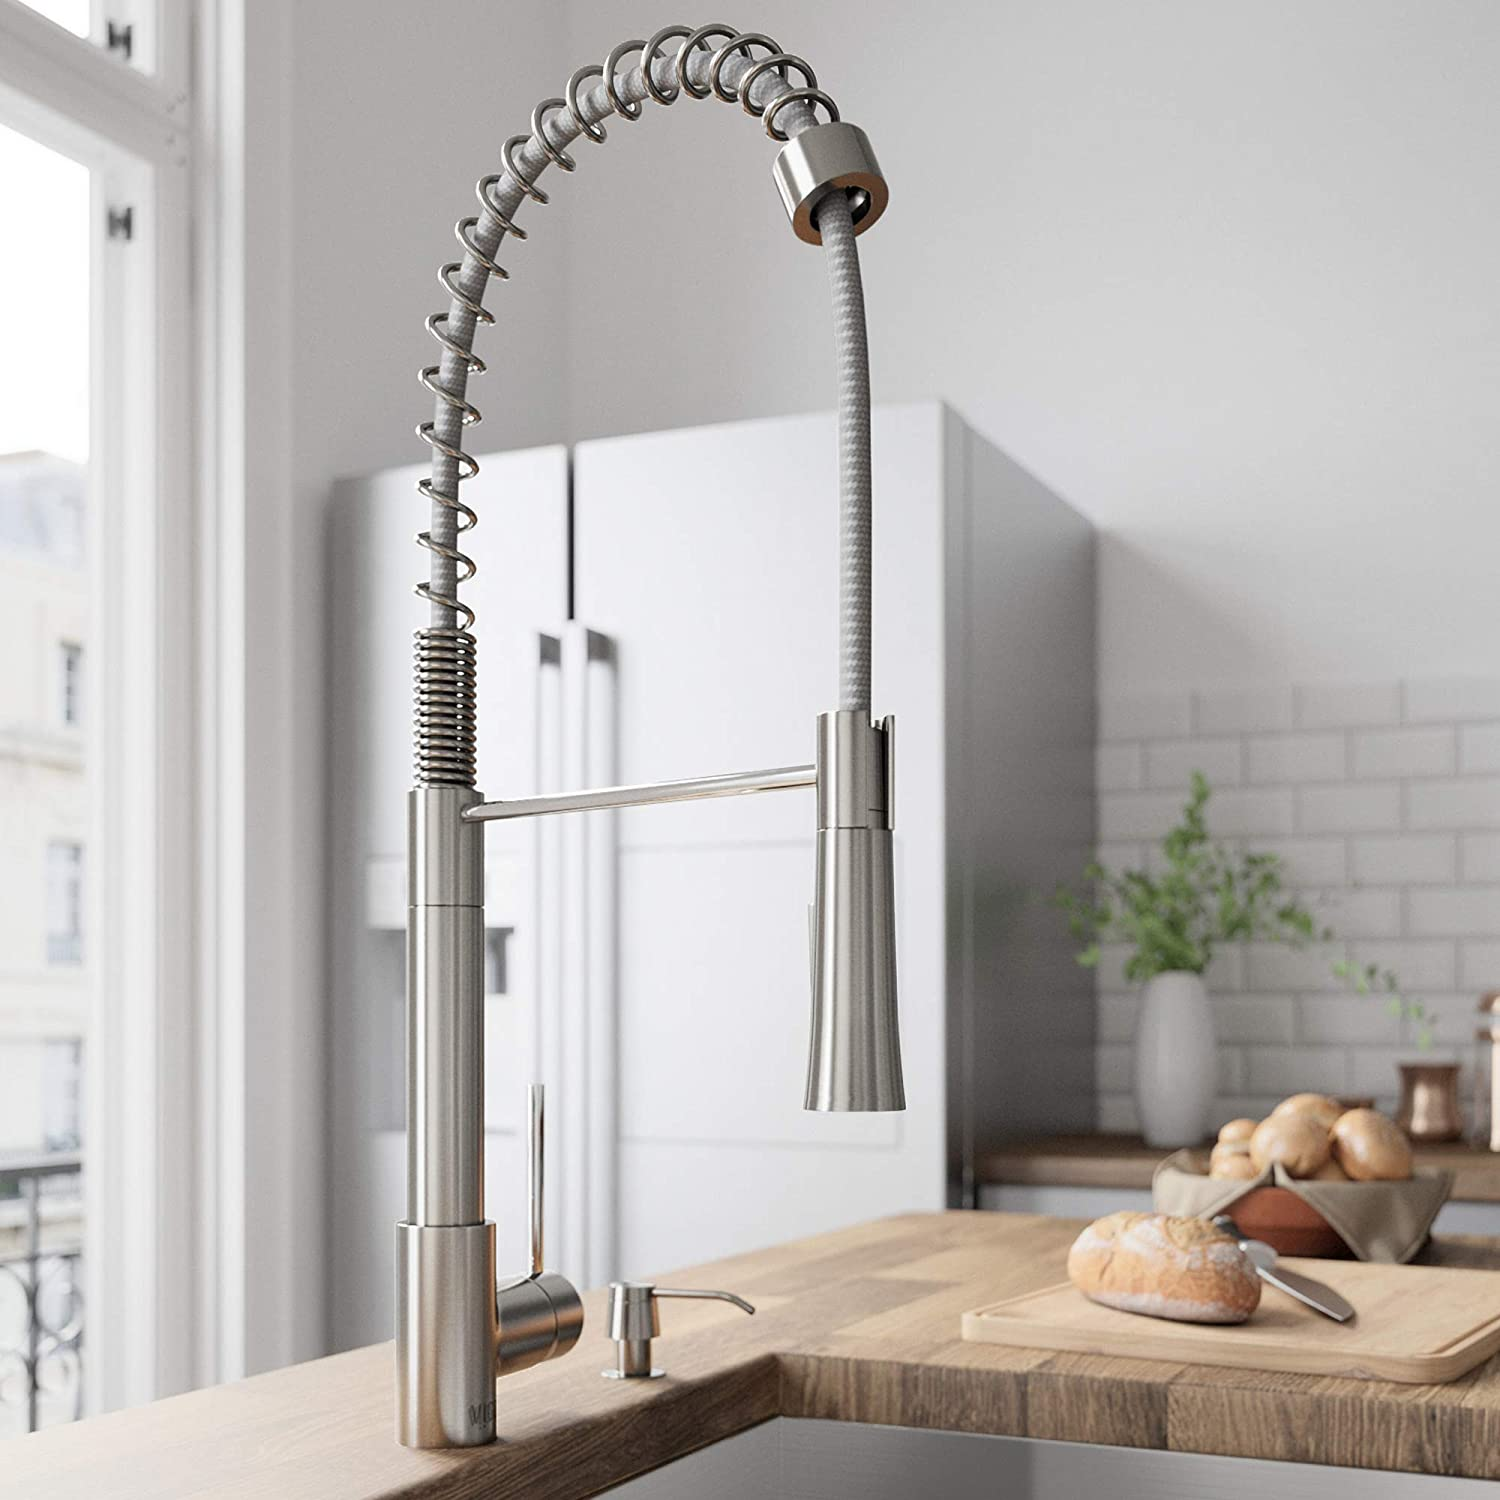 VIGO VG02022ST Laurelton 22 Inch Single Handle Pulldown Arc Brass Kitchen Sink Faucet, Single Hole Install, 360 Swivel Spout, Premium Seven Layer Plated Stainless Steel Finish